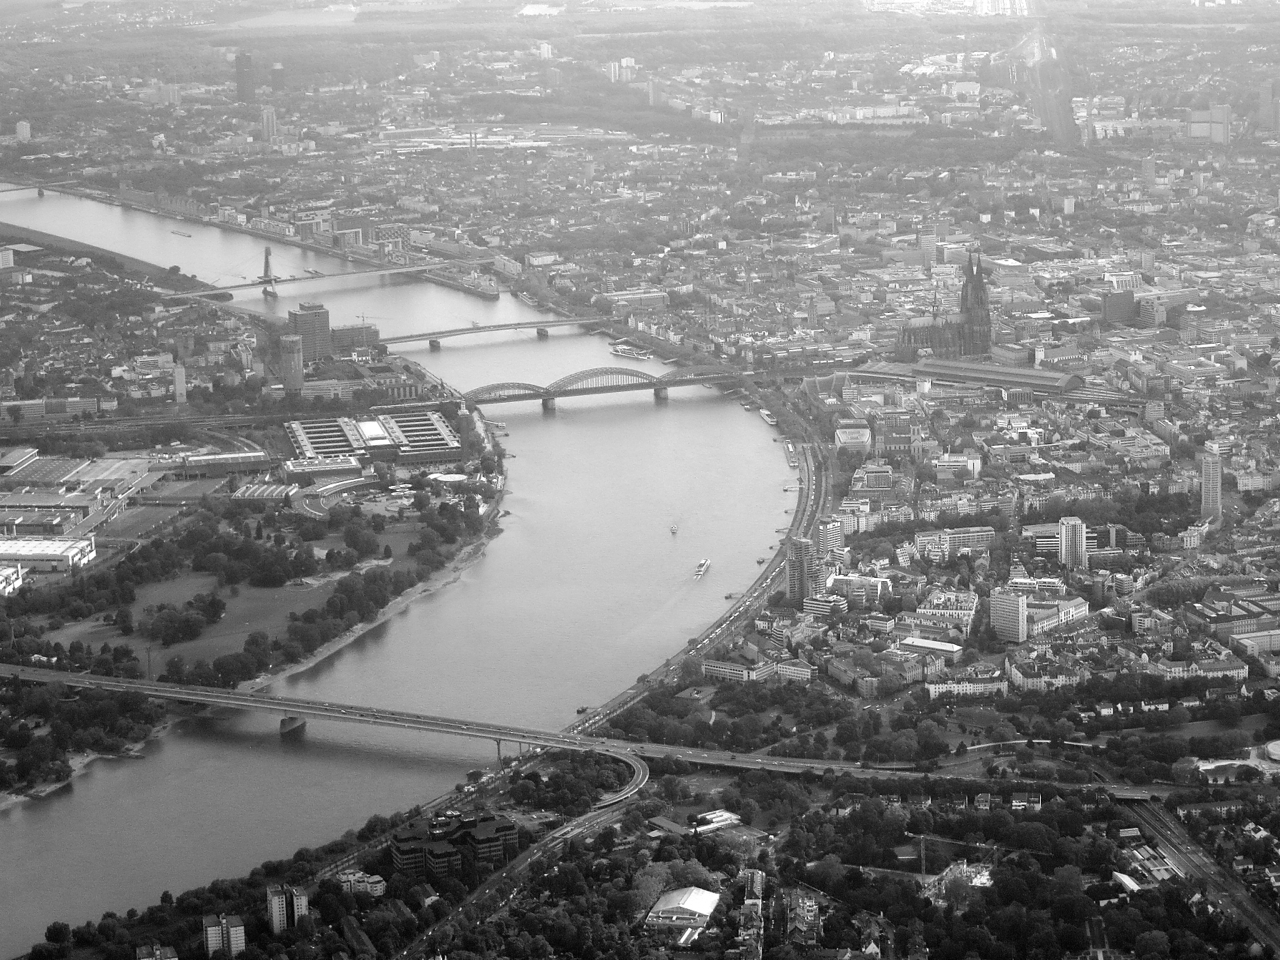 Cologne, Germany aerial photograph